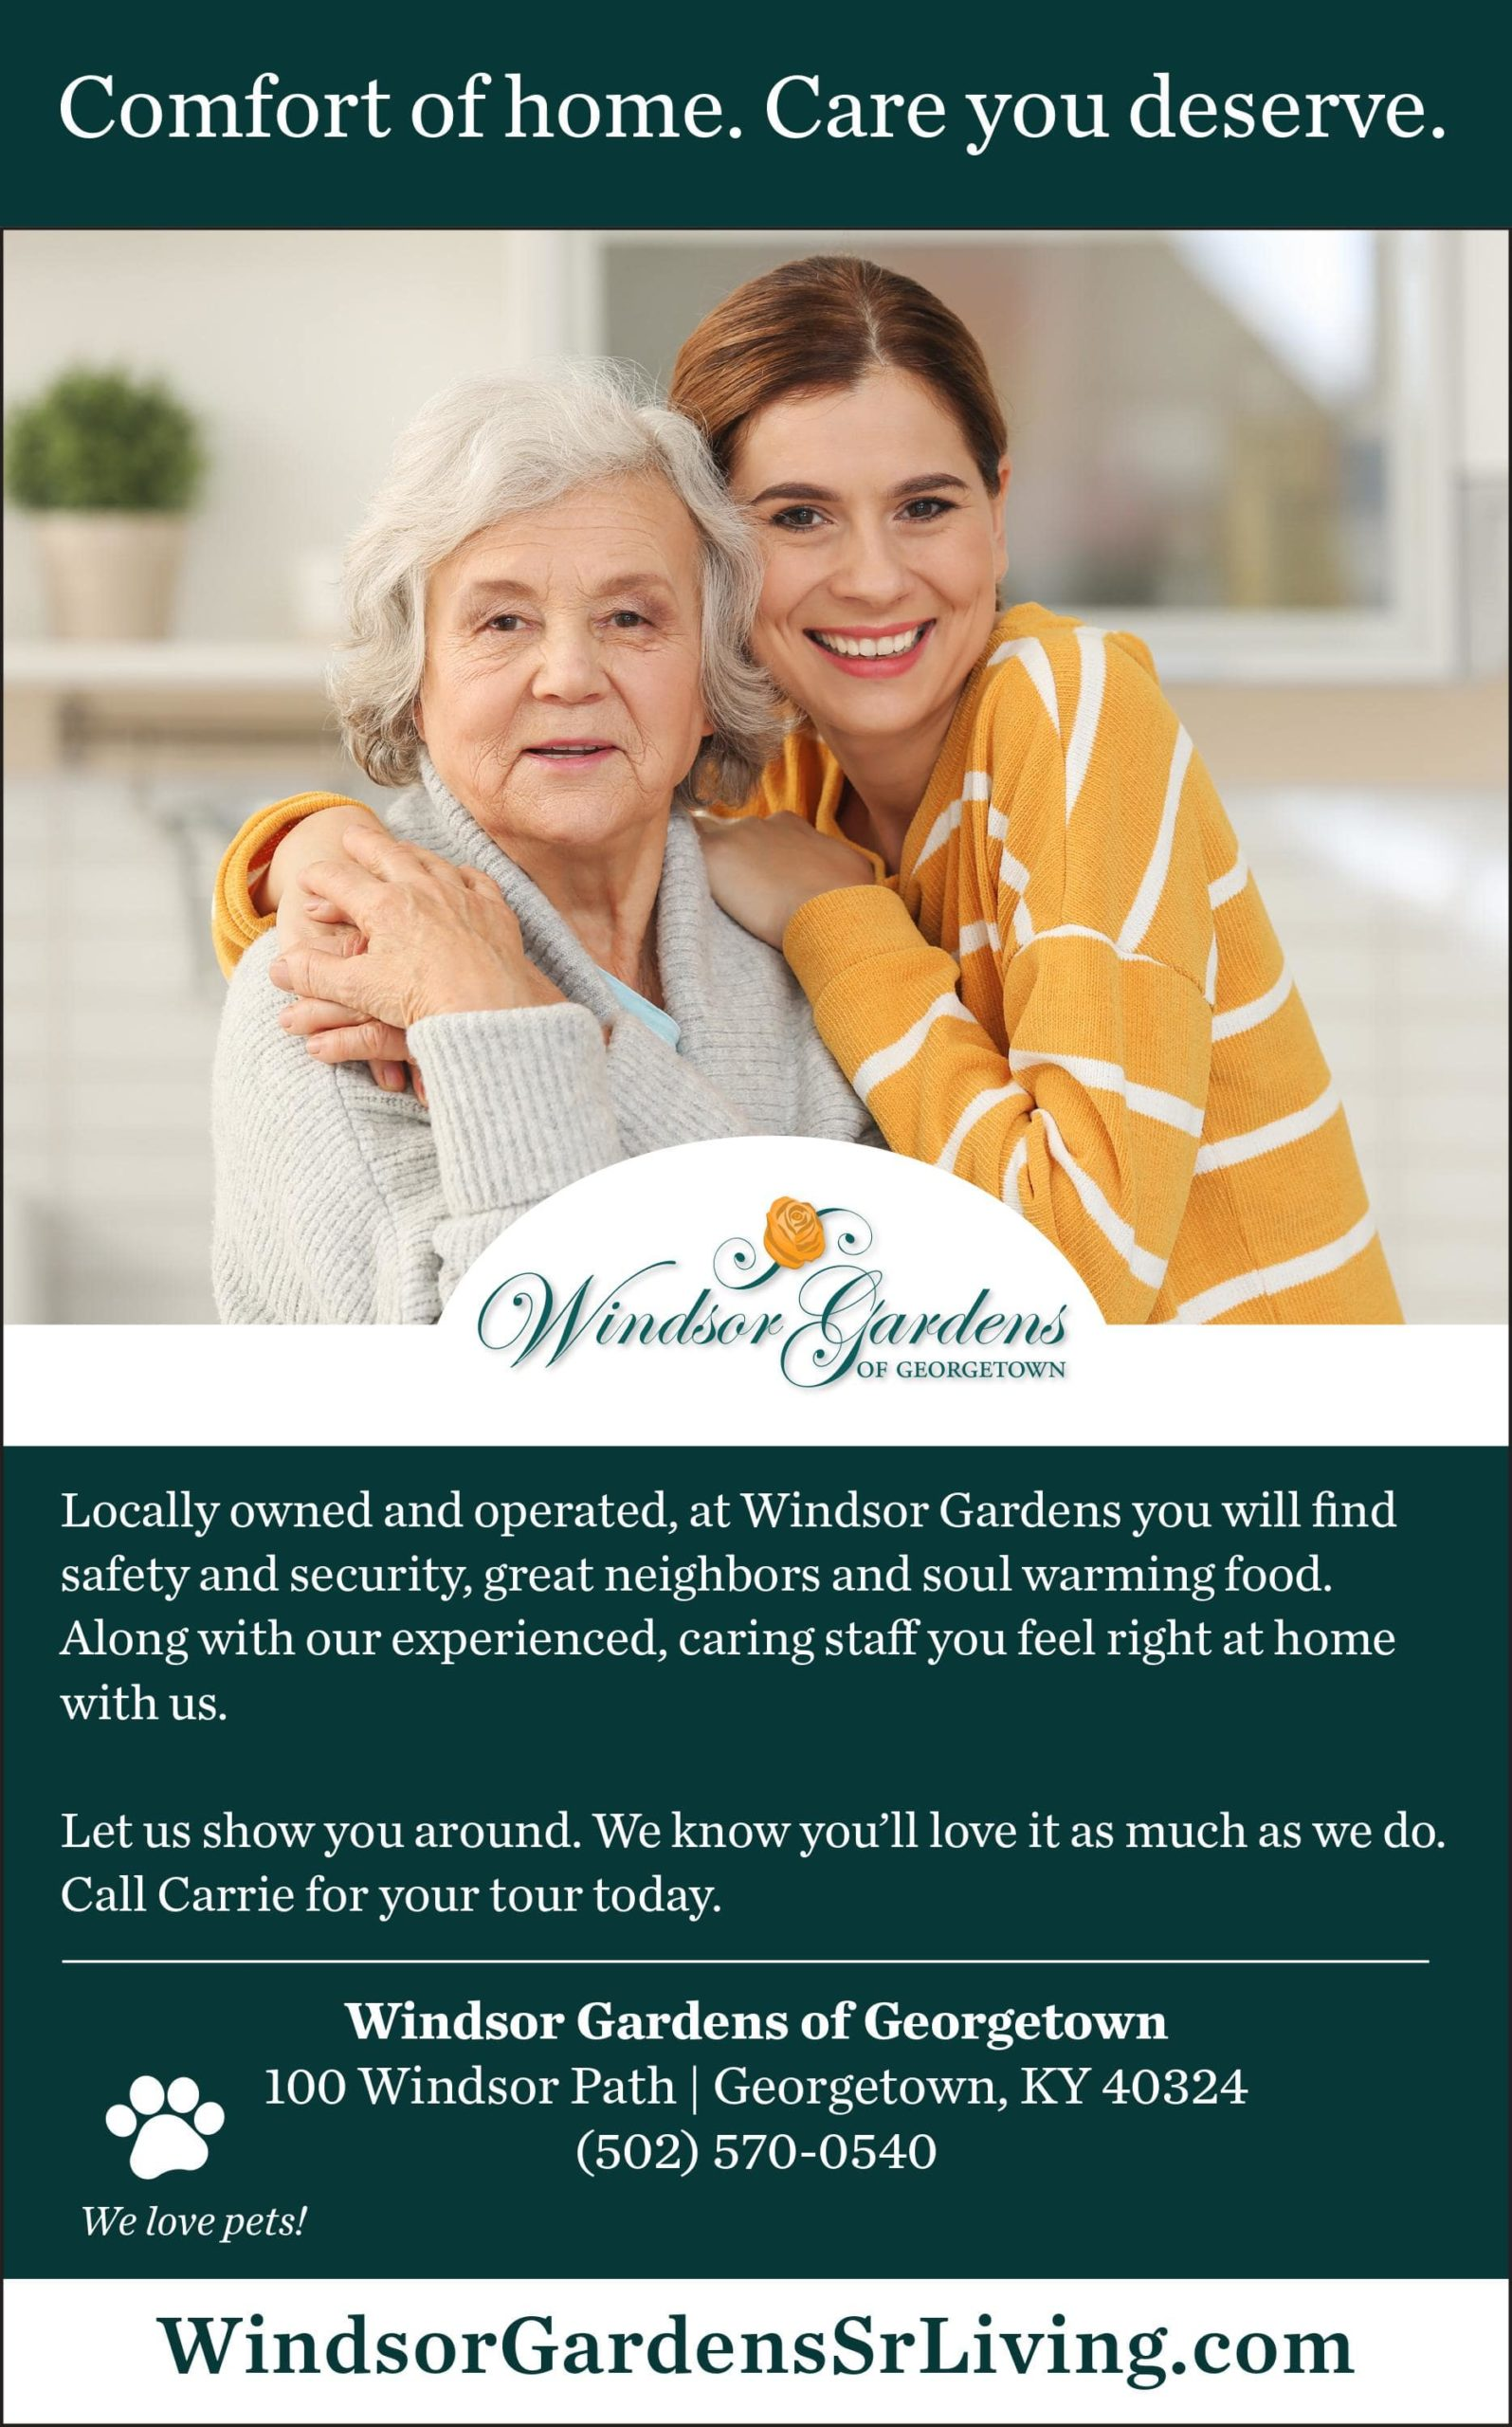 Comfort of home. Care you deserve